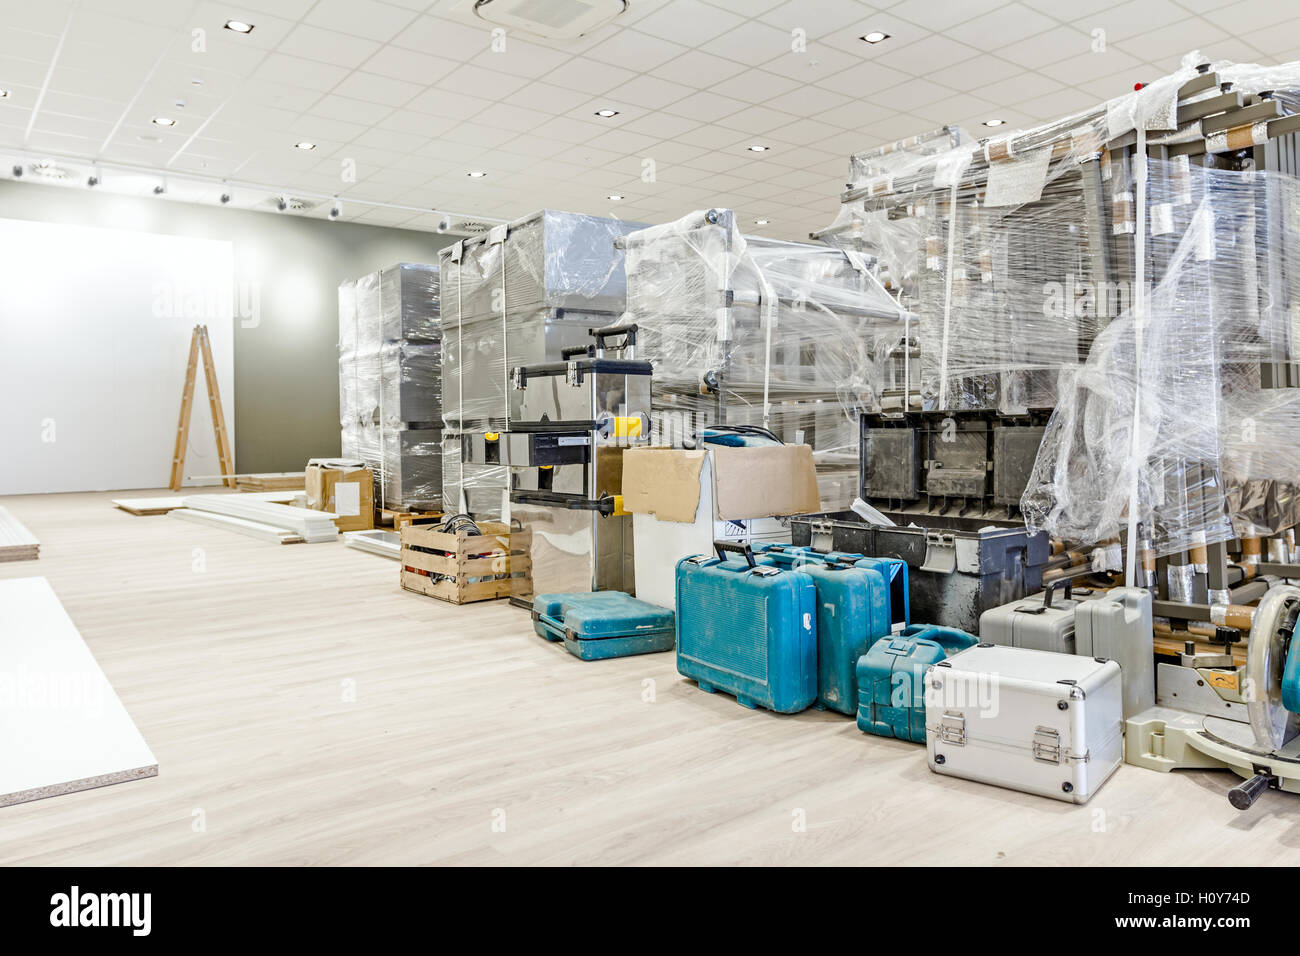 Furnishing equipment is warped in foil for finished modern large showroom with ceiling light, toolkit is on floor. - Stock Image